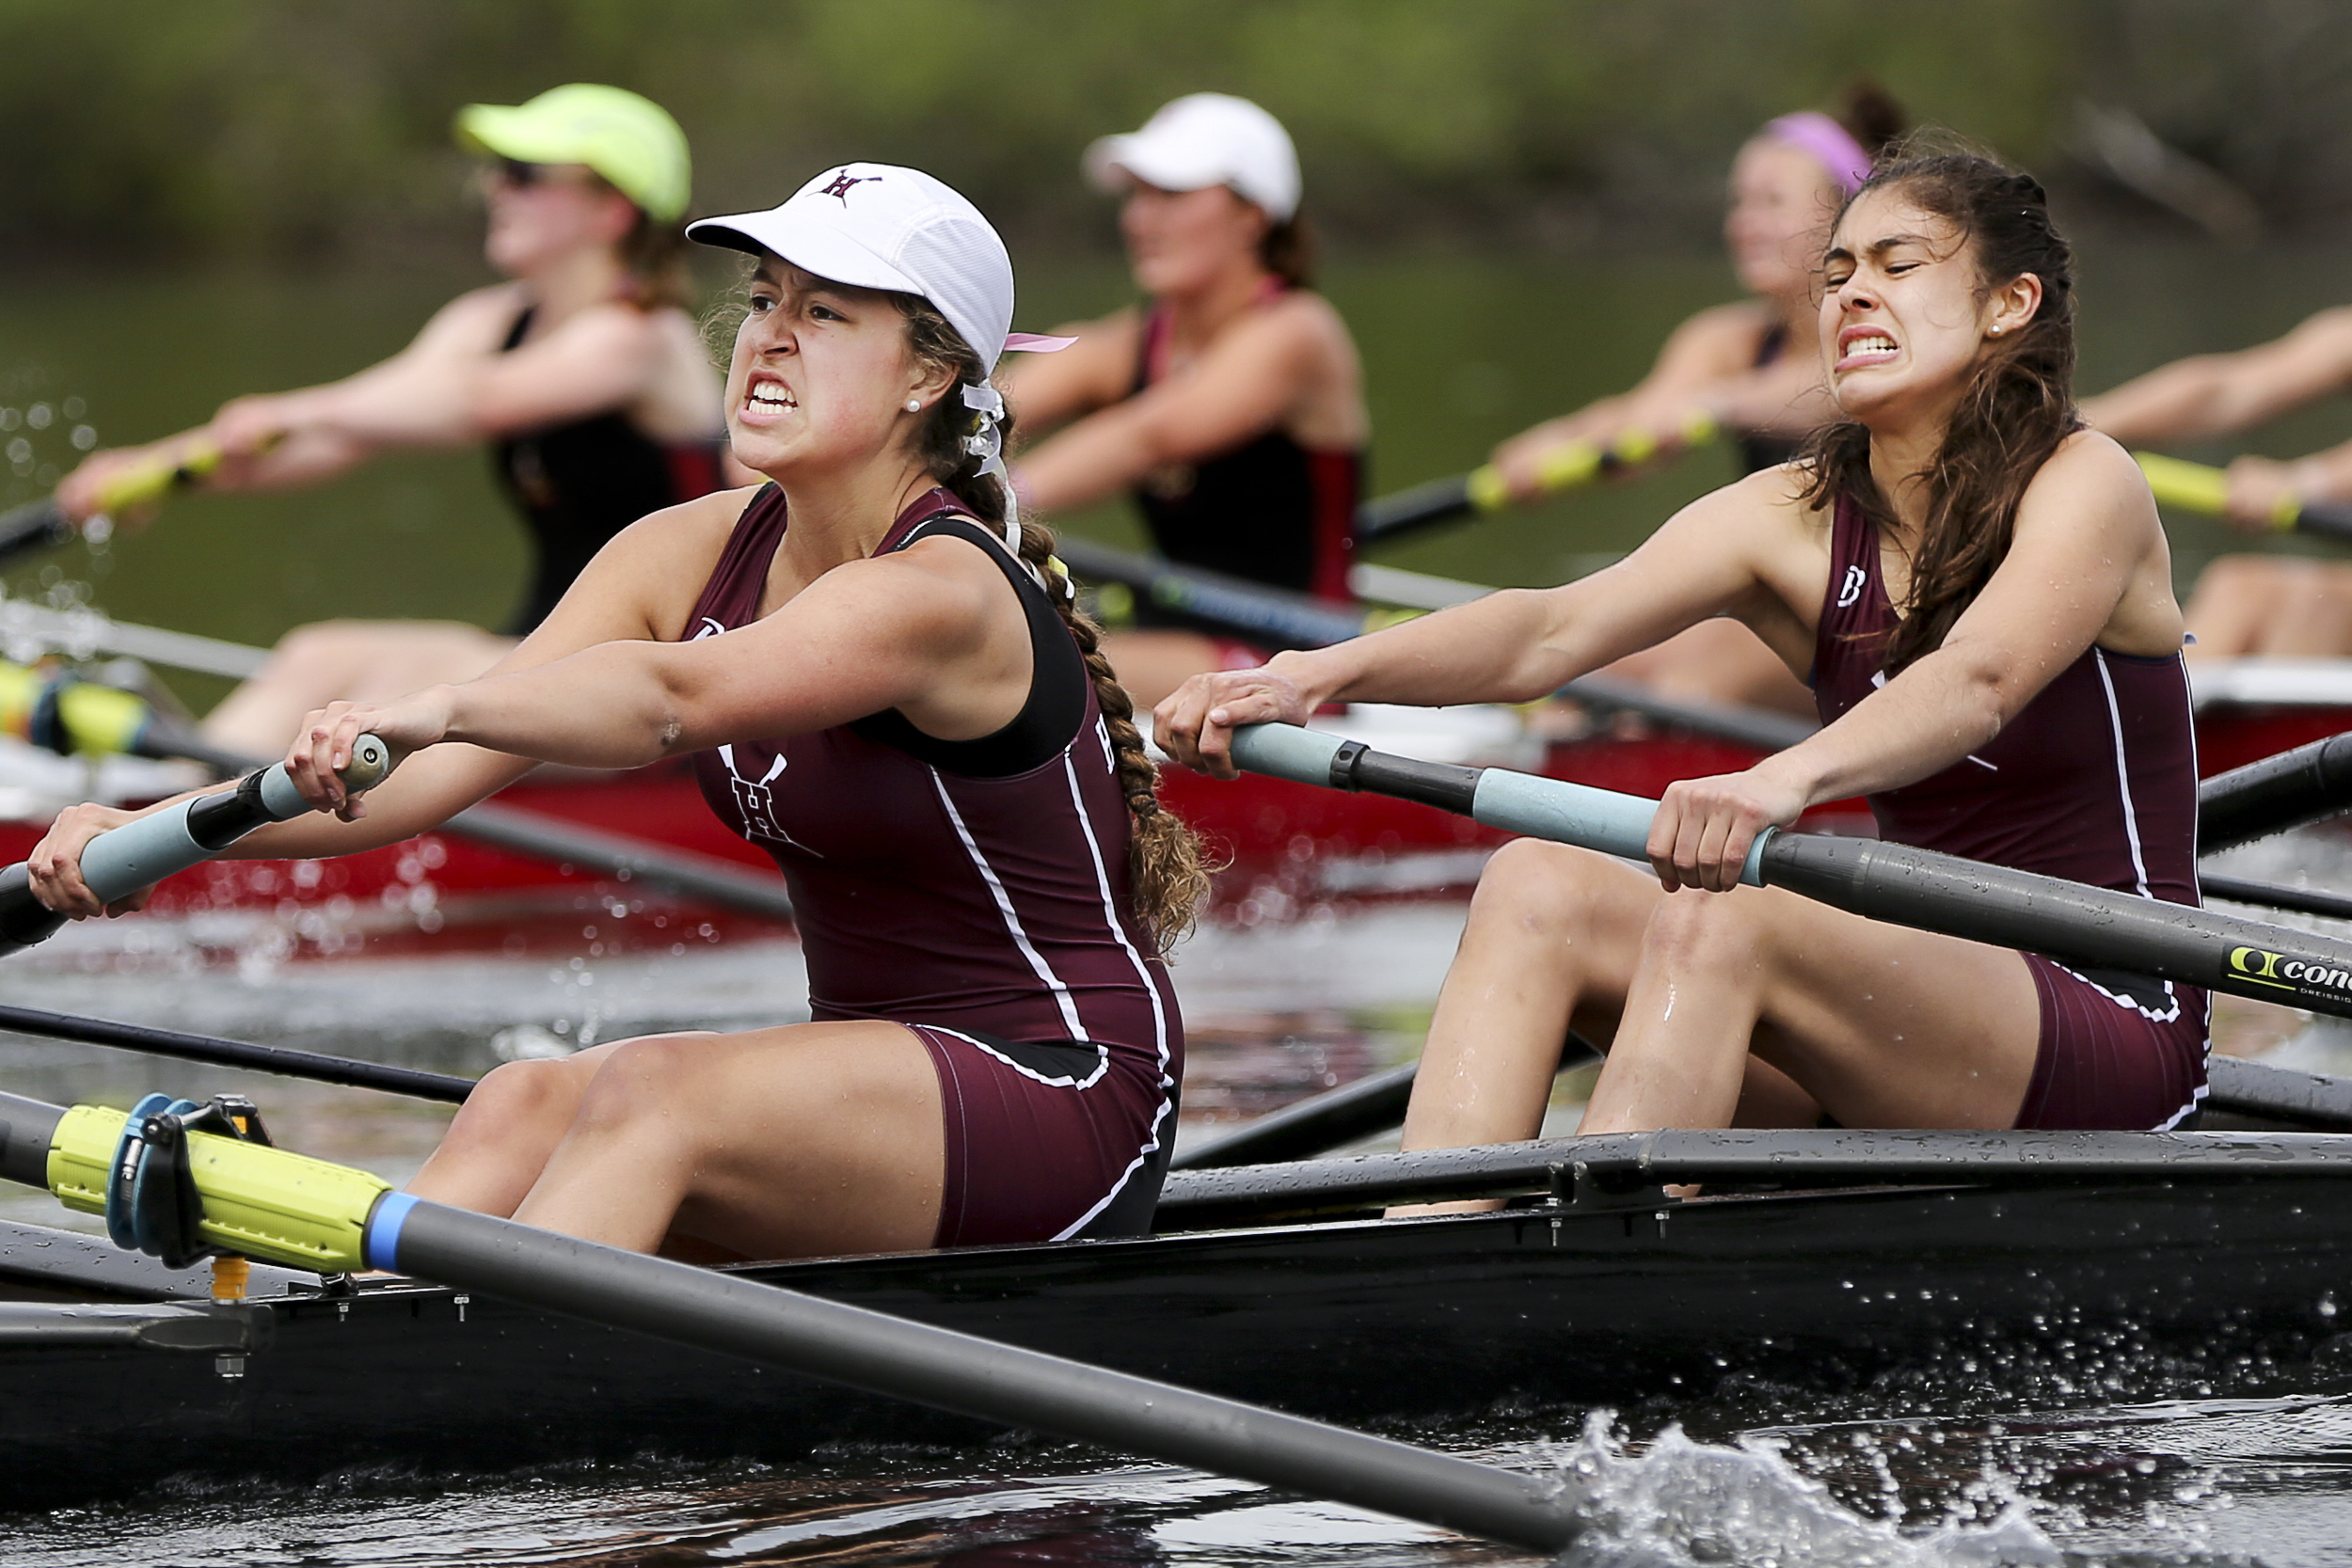 Hanover's girls varsity boat struggles to keep pace with Tabor Academy during the 1500-meter race down the Connecticut River in Hanover, N.H., on May 16, 2015.